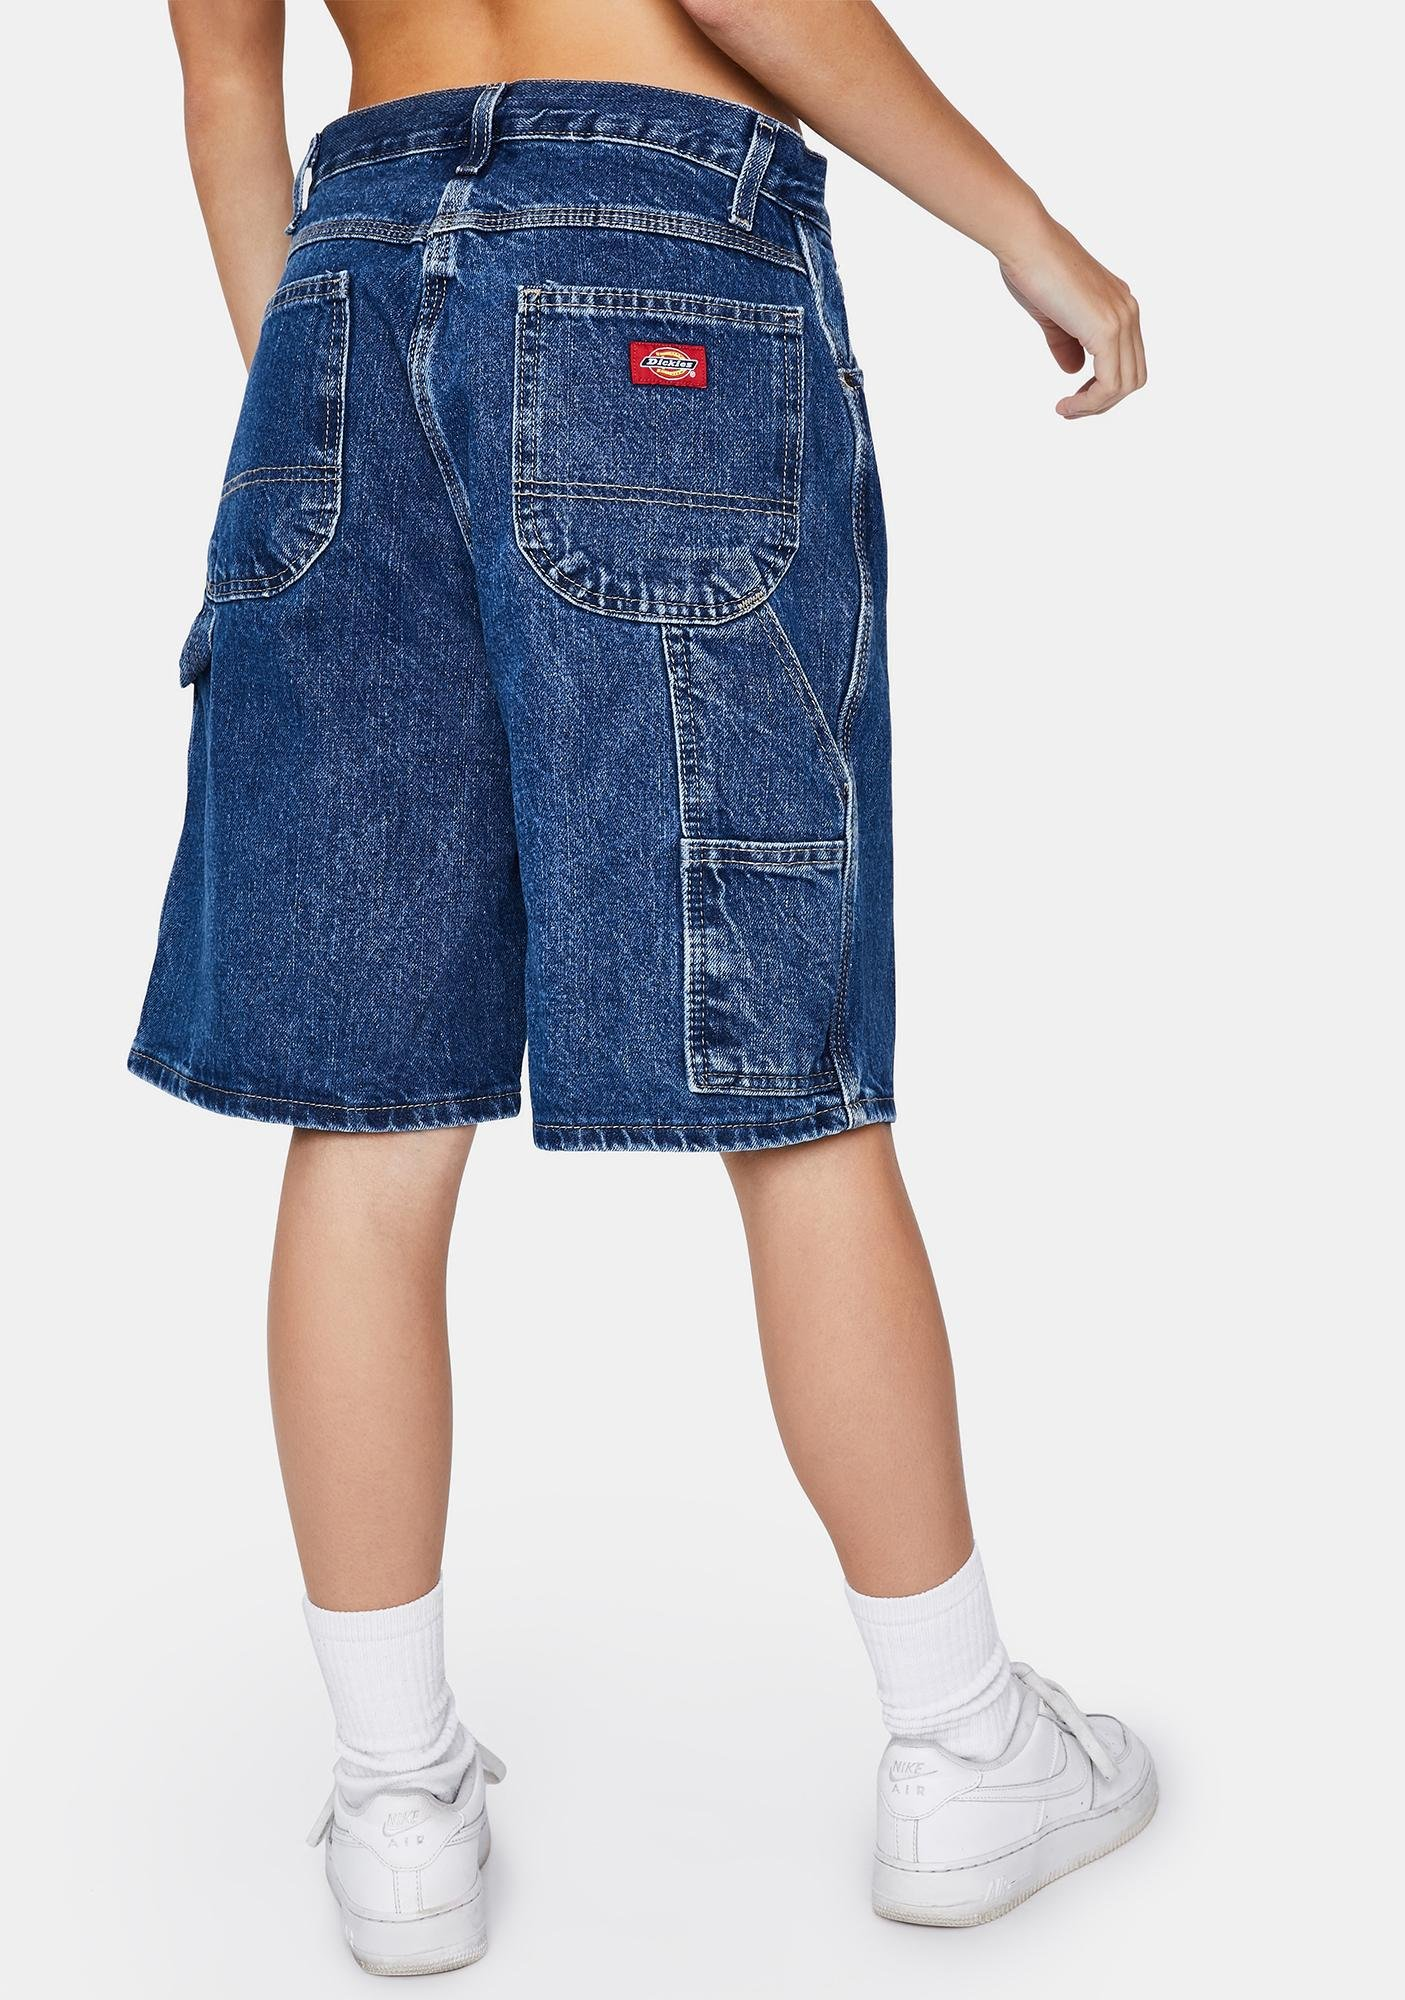 "Dickies 9 1/2"" Relaxed Fit Carpenter Shorts"